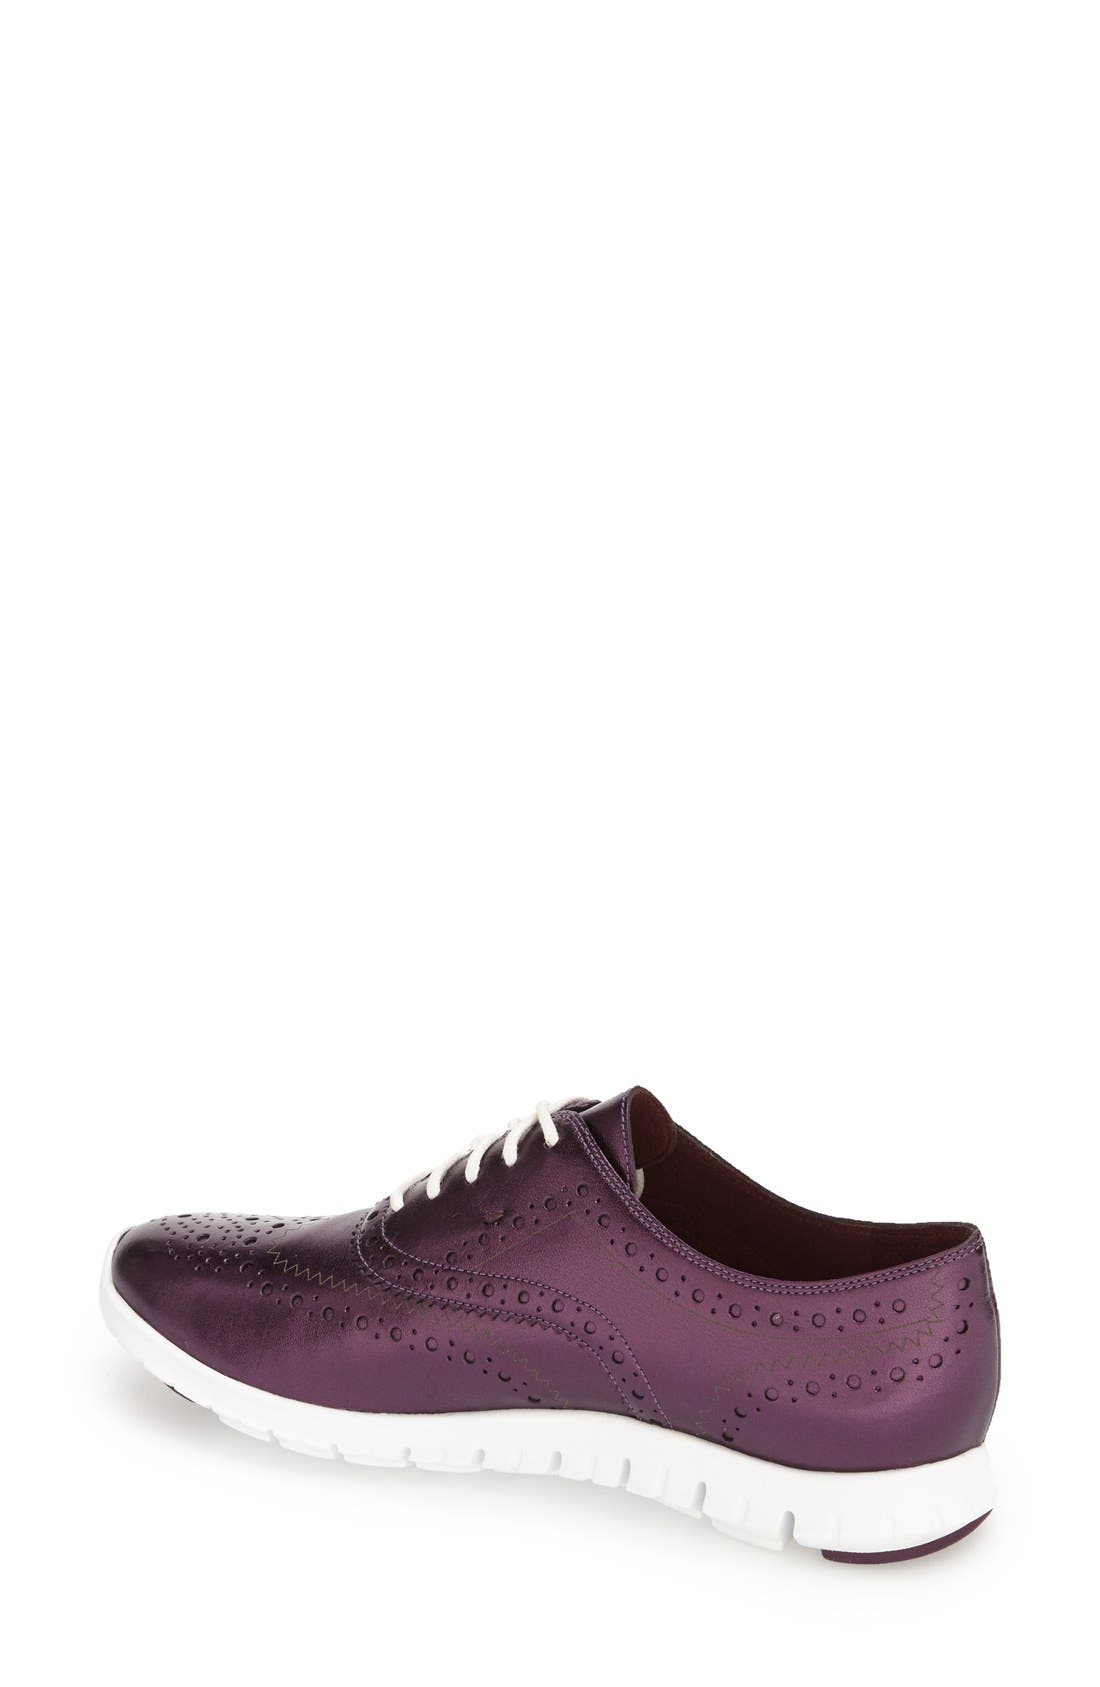 'ZeroGrand' Perforated Wingtip,                             Alternate thumbnail 53, color,